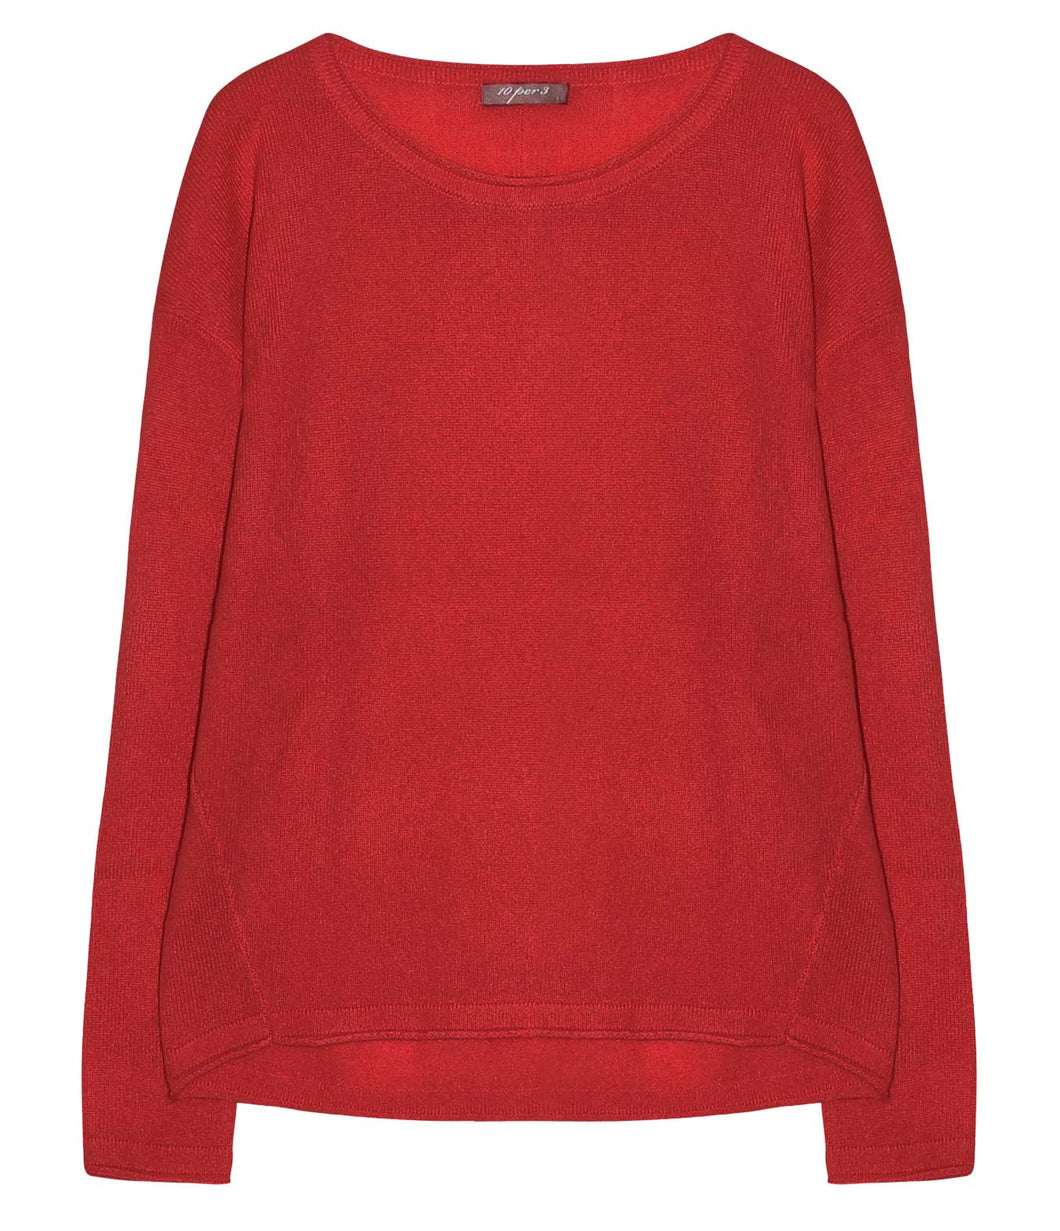 10per3 cashmere sweater round neck